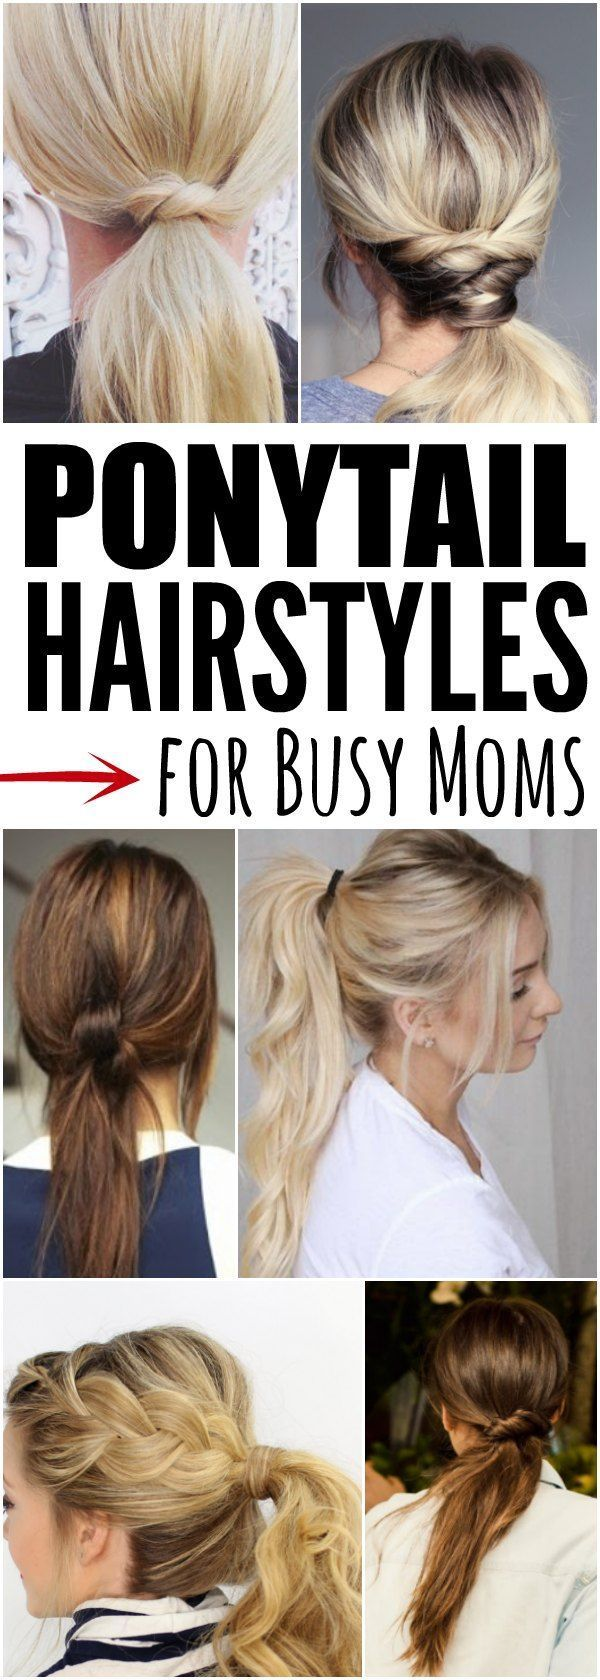 best 25+ easy ponytail hairstyles ideas on pinterest | quick updo